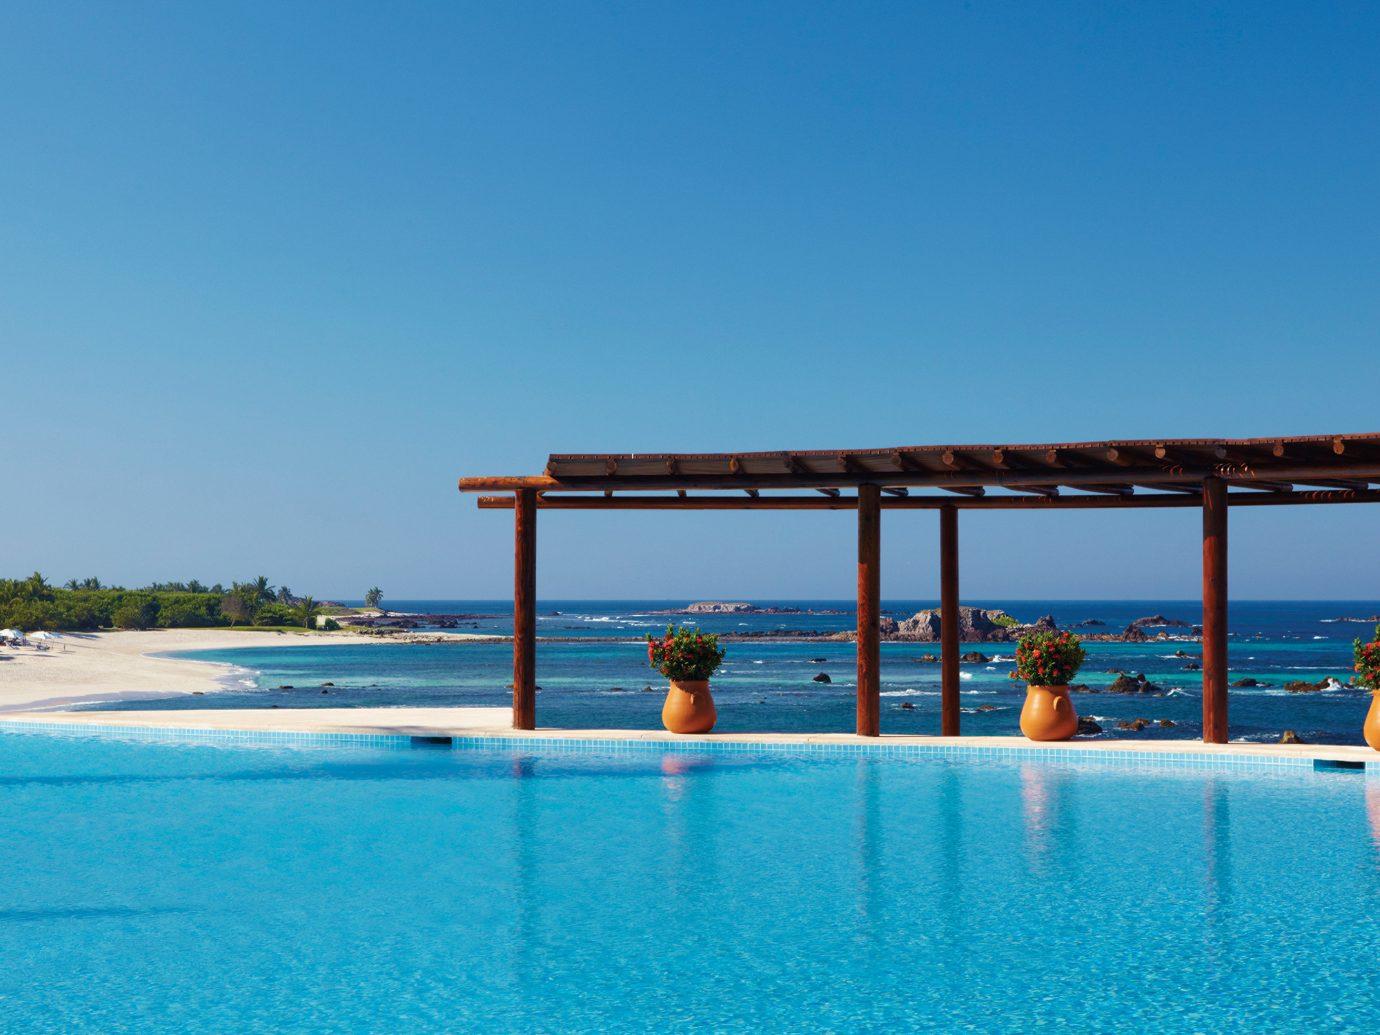 Pool at Four Seasons Resort Punta Mita, Mexico